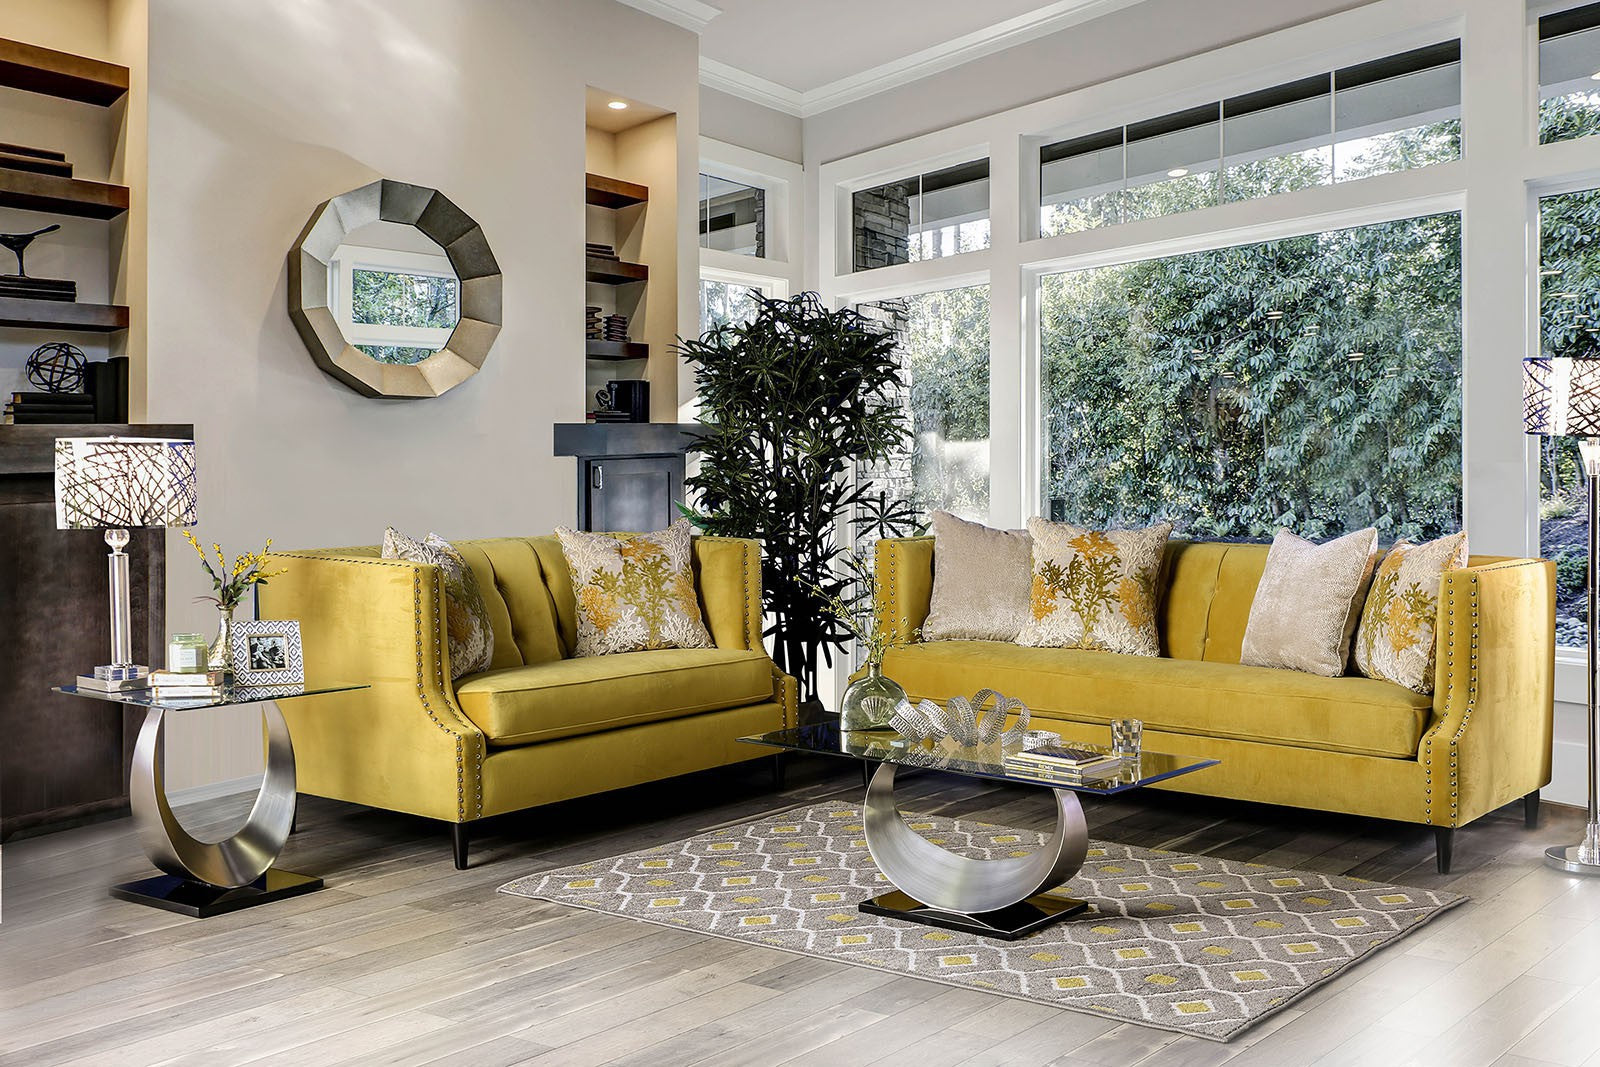 Tegan Solid Wood Frame Royal Yellow/Light Tan Transitional Sofa